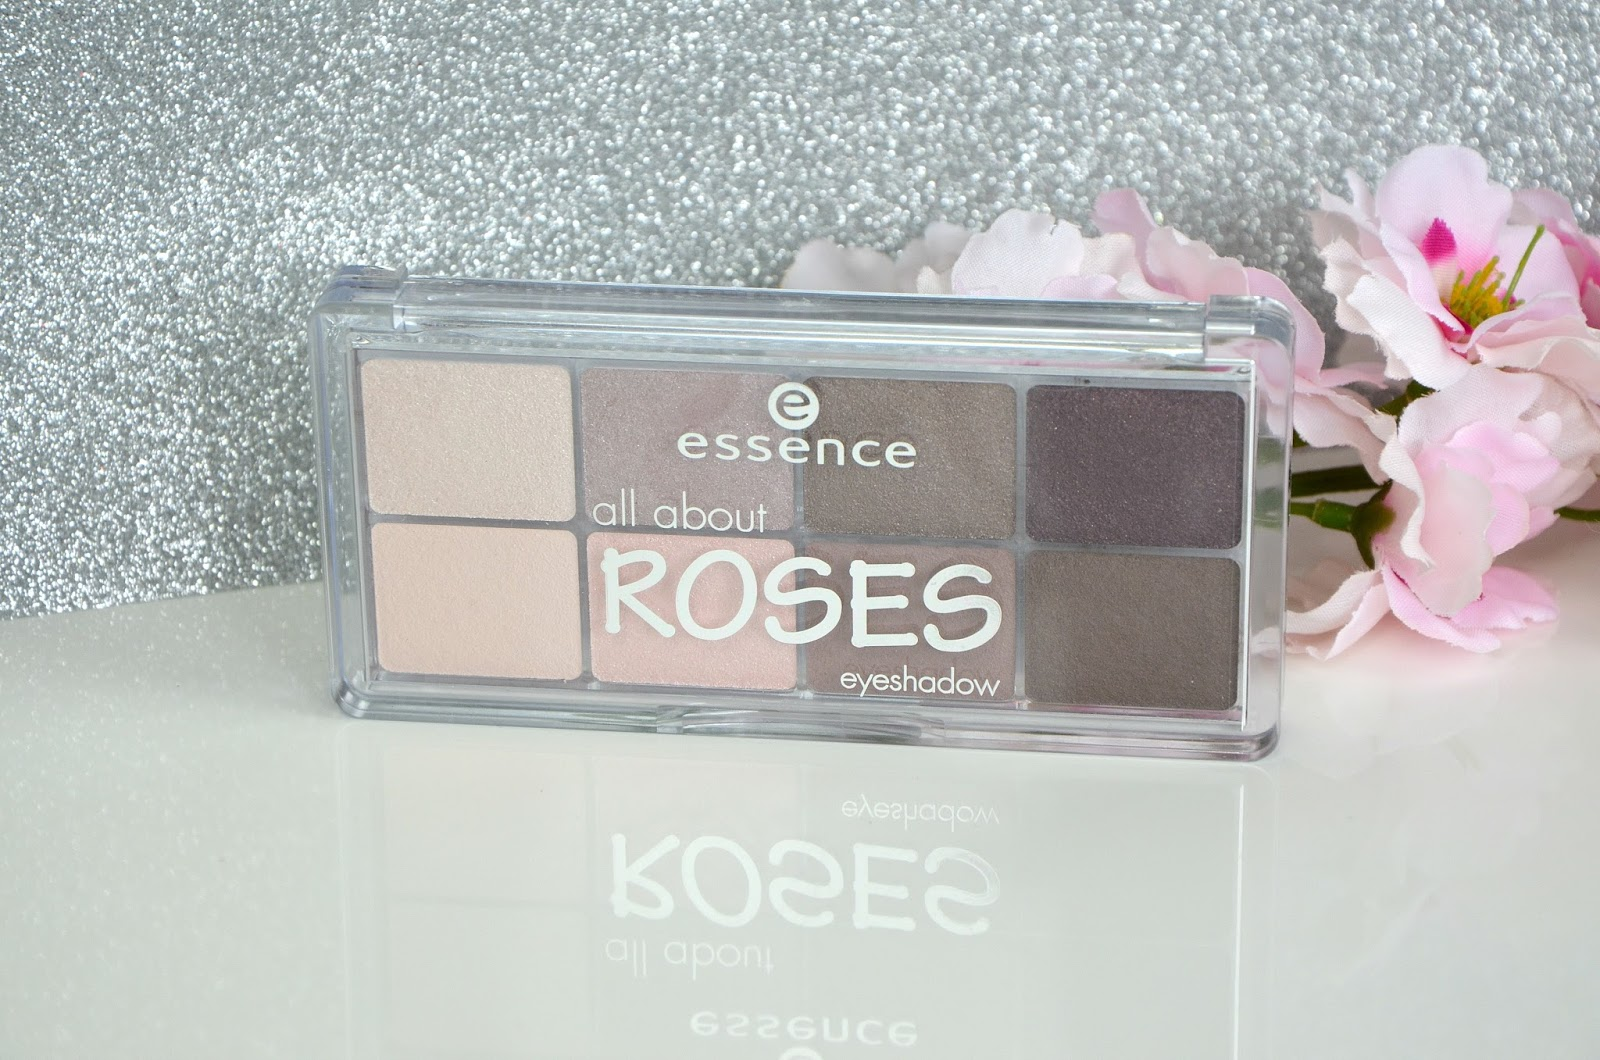 Essence palette All about roses eyeshadow